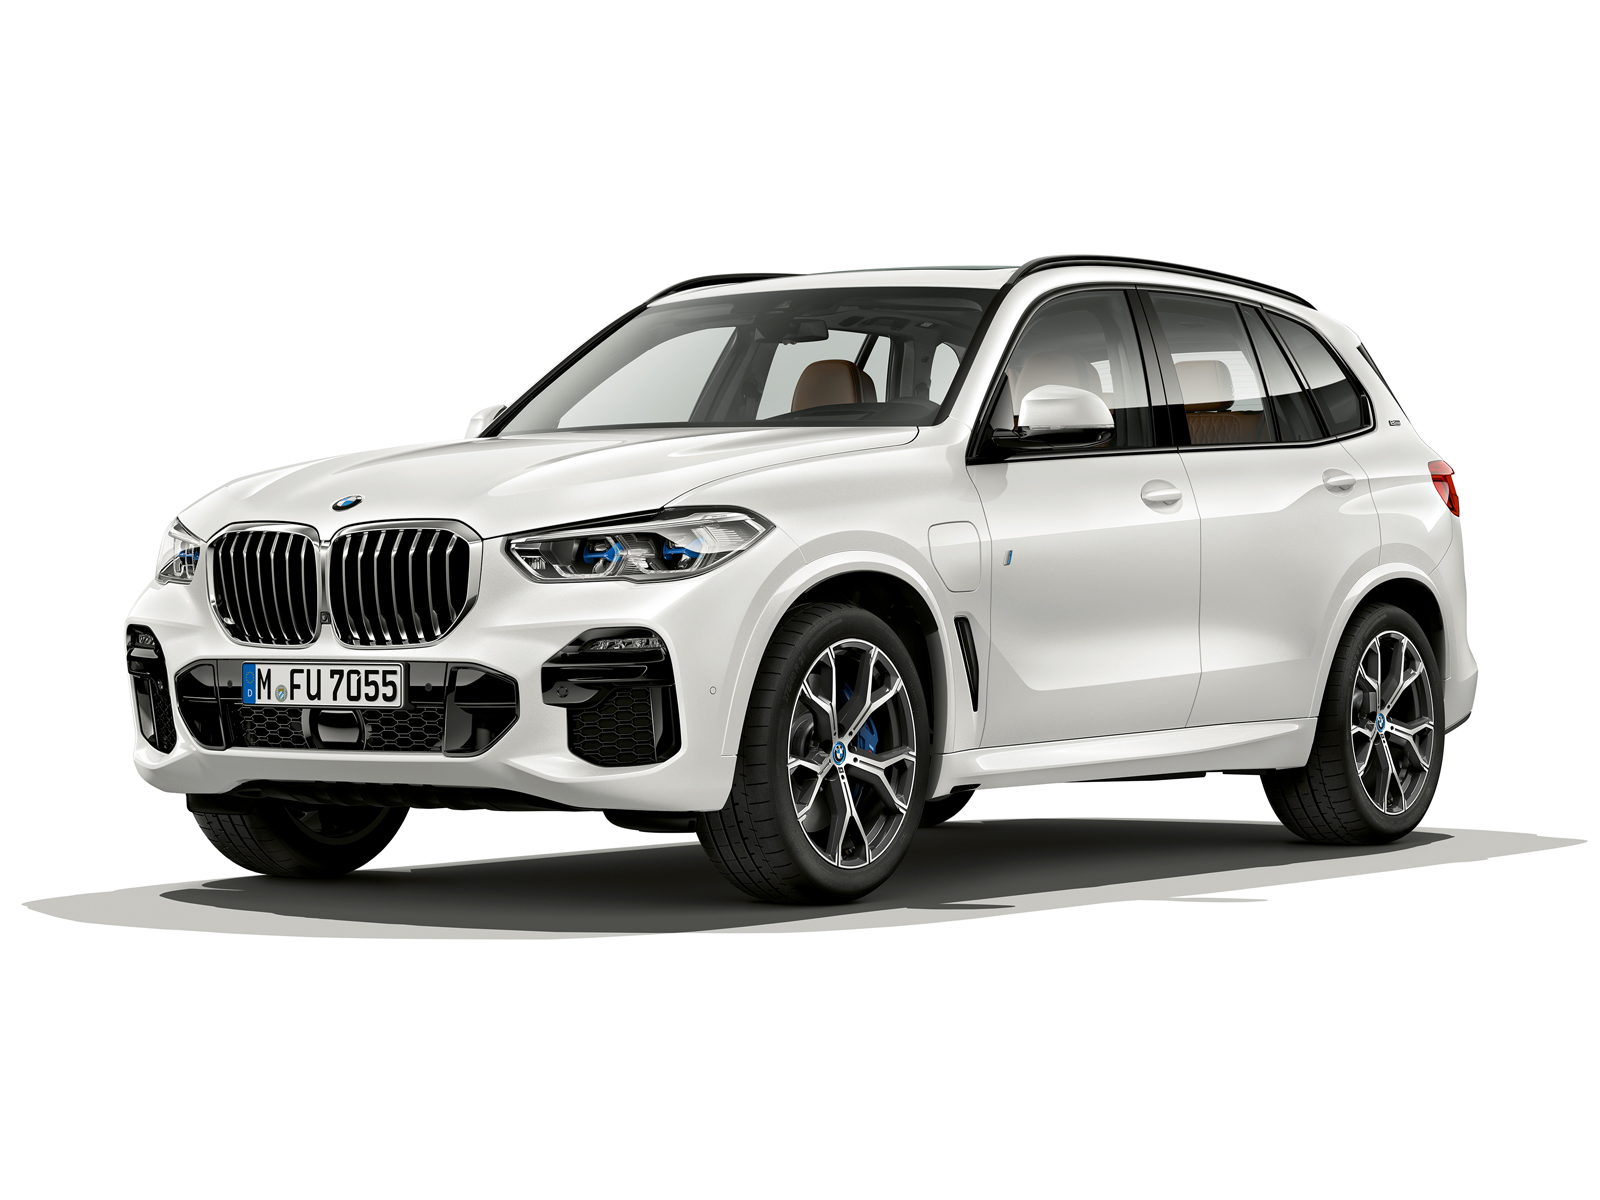 bmw x5 xdrive 45e iperformance coming to the us in 2020 news. Black Bedroom Furniture Sets. Home Design Ideas